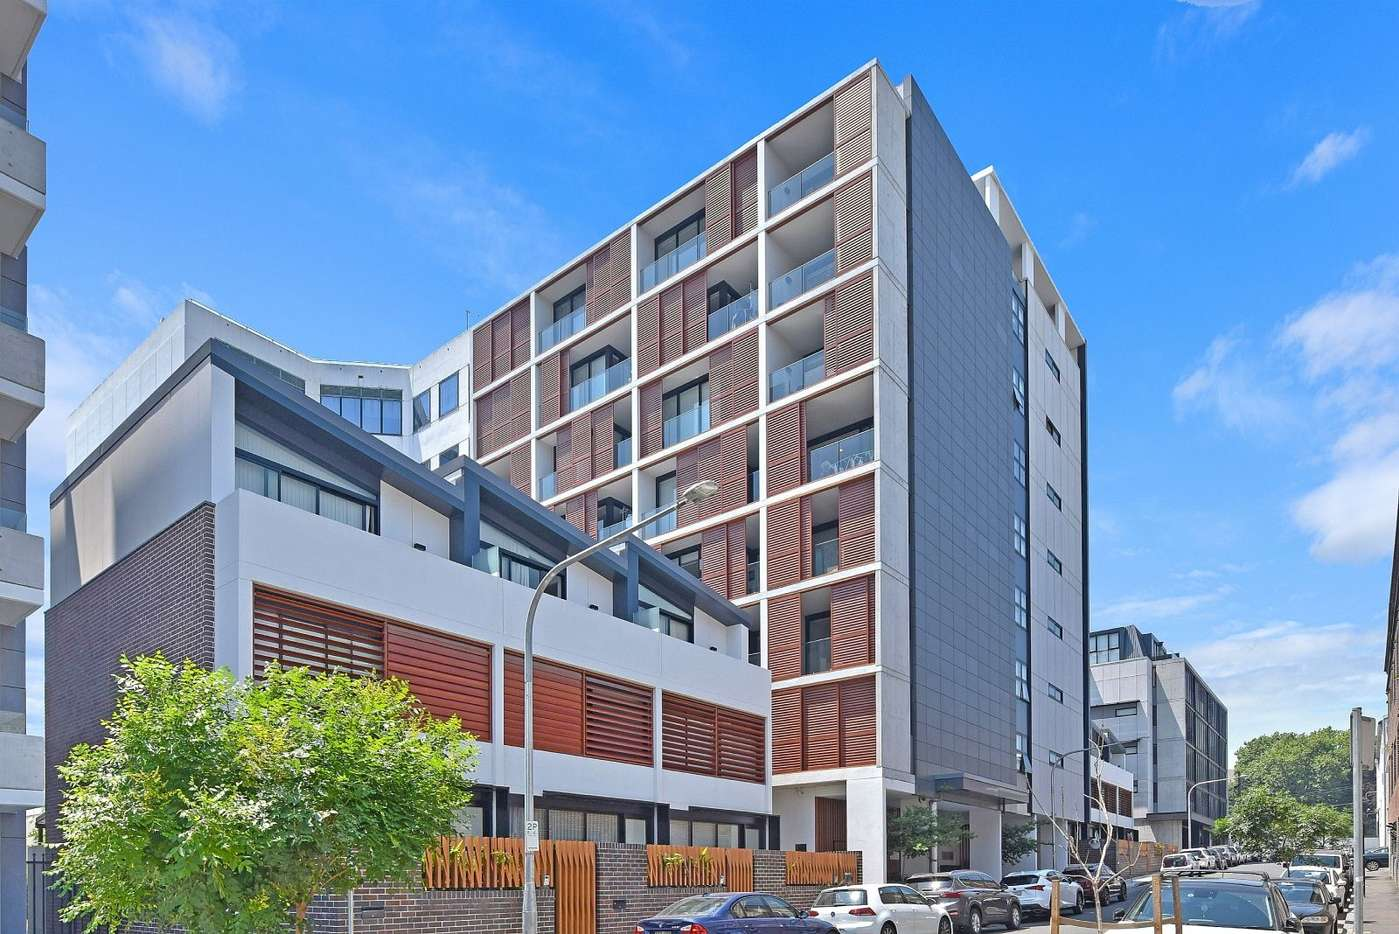 Main view of Homely apartment listing, 204/30 Barr Street, Camperdown, NSW 2050